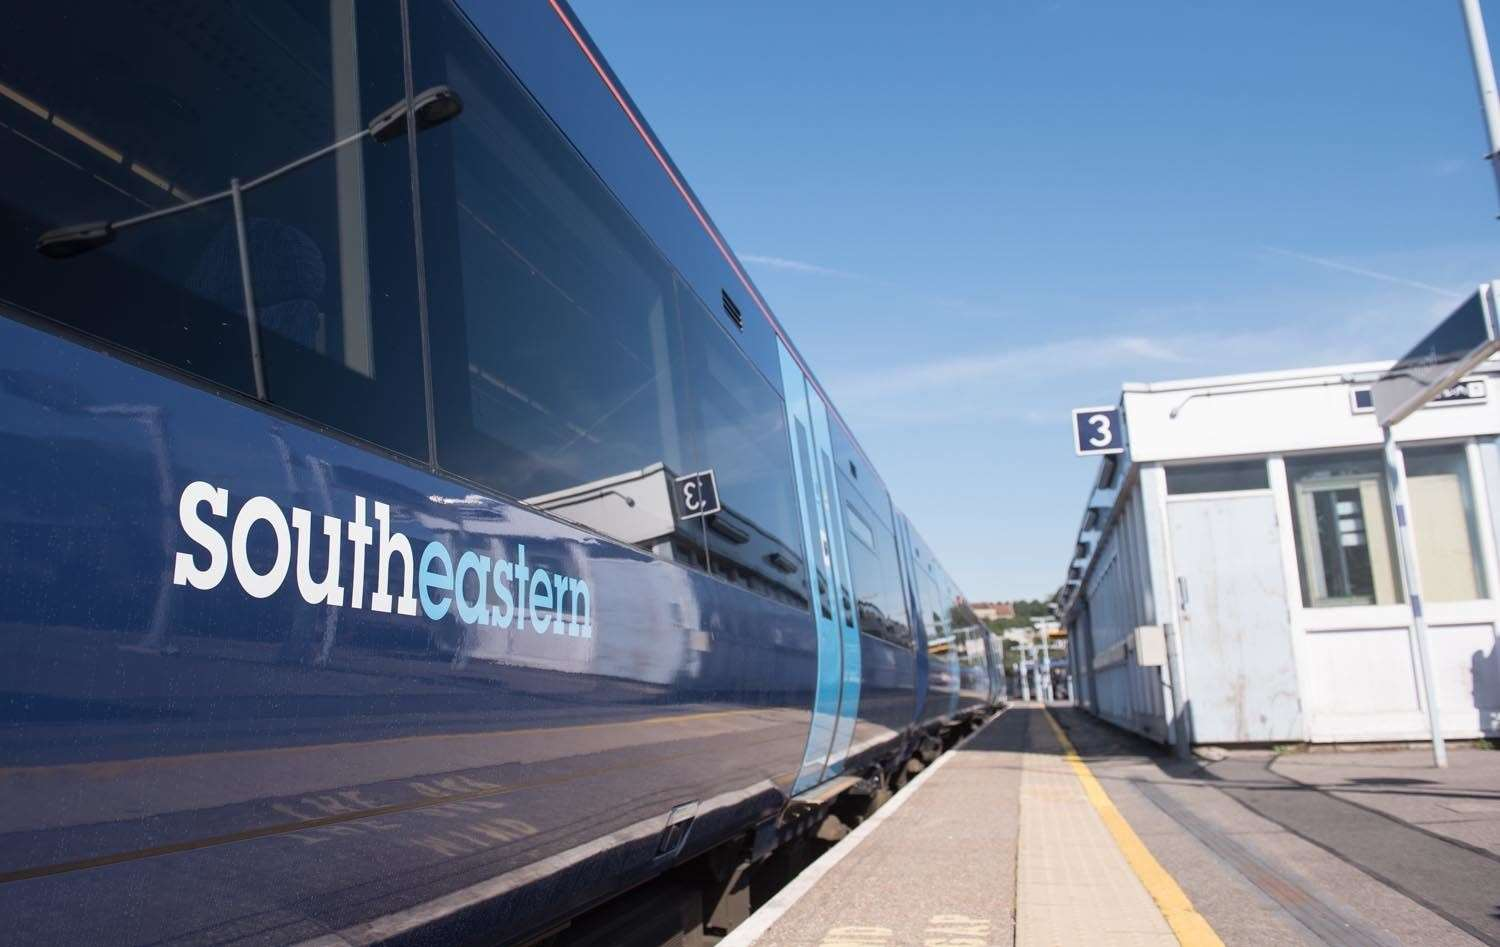 A train from the South-East.  Image bank